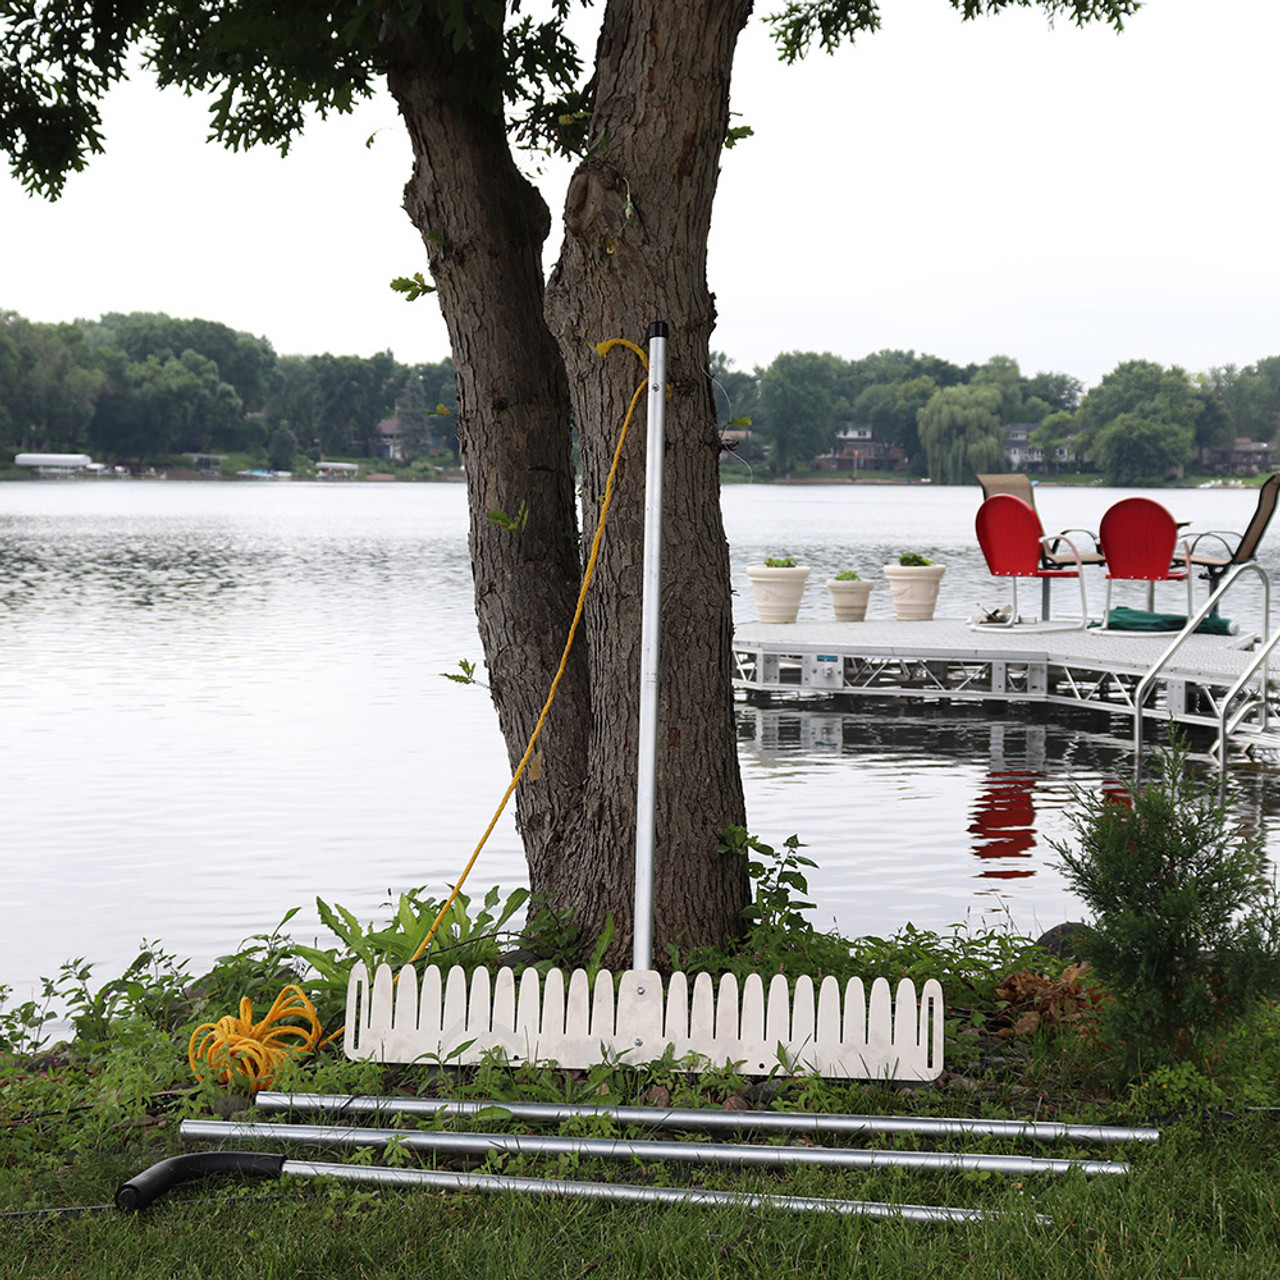 Tool for cutting and pulling weeds in lake